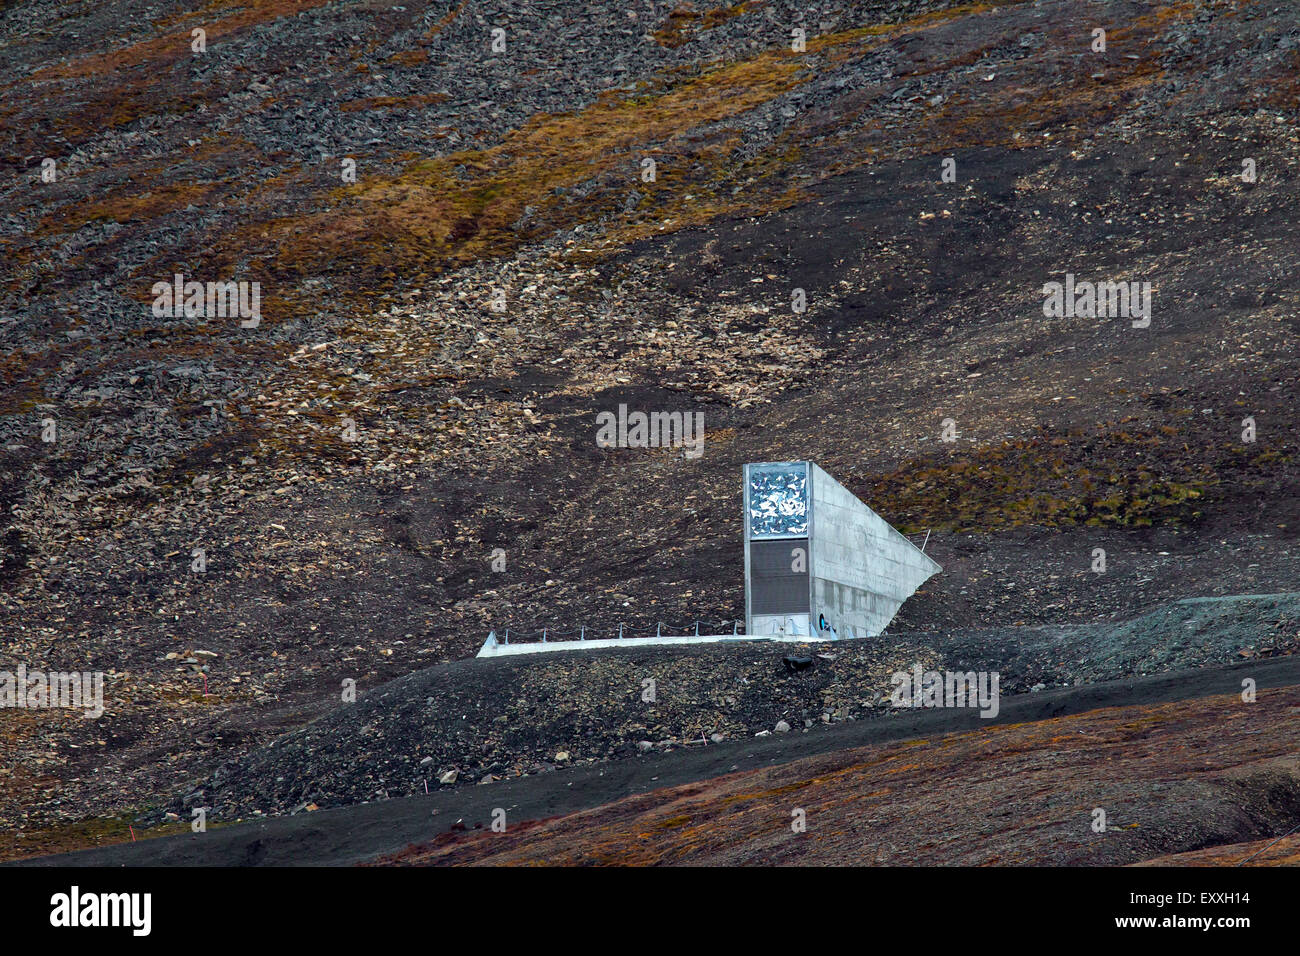 Entrance to the Svalbard Global Seed Vault, largest seed bank in the world near Longyearbyen on the island of Spitsbergen Stock Photo